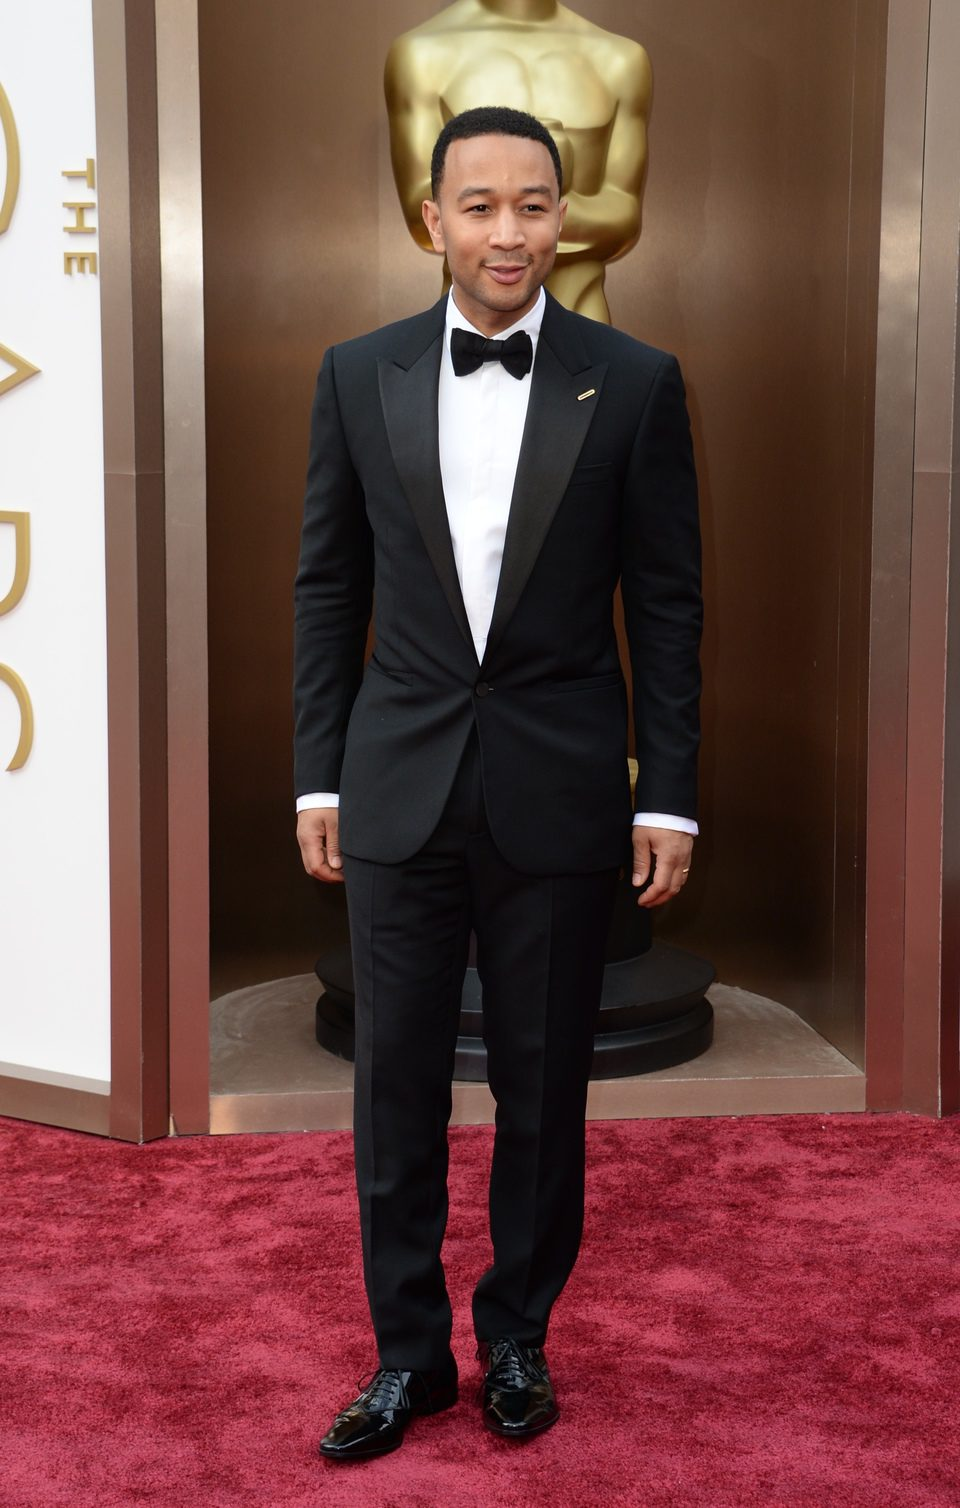 John Legend at the 2014 Oscars